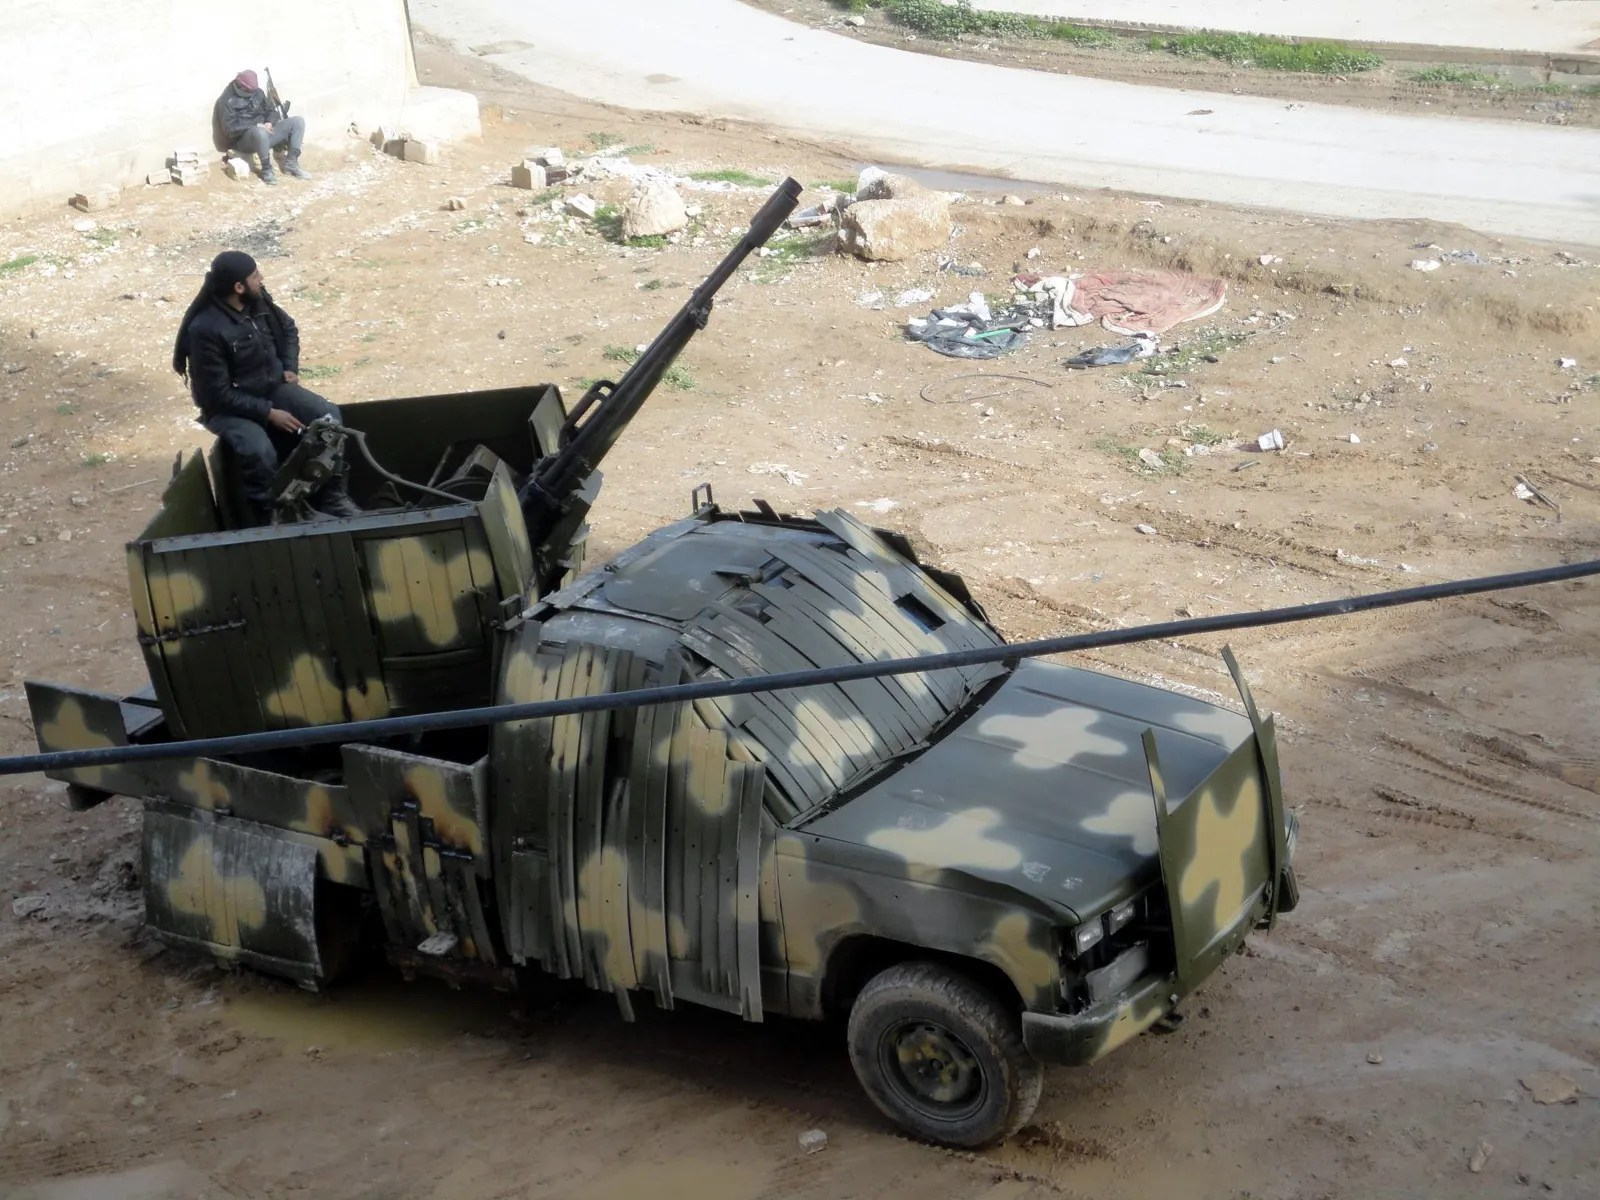 This technical is built from a pickup truck chassis and mounts a large anti-aircraft gun. It also features improvised armor and camouflage.